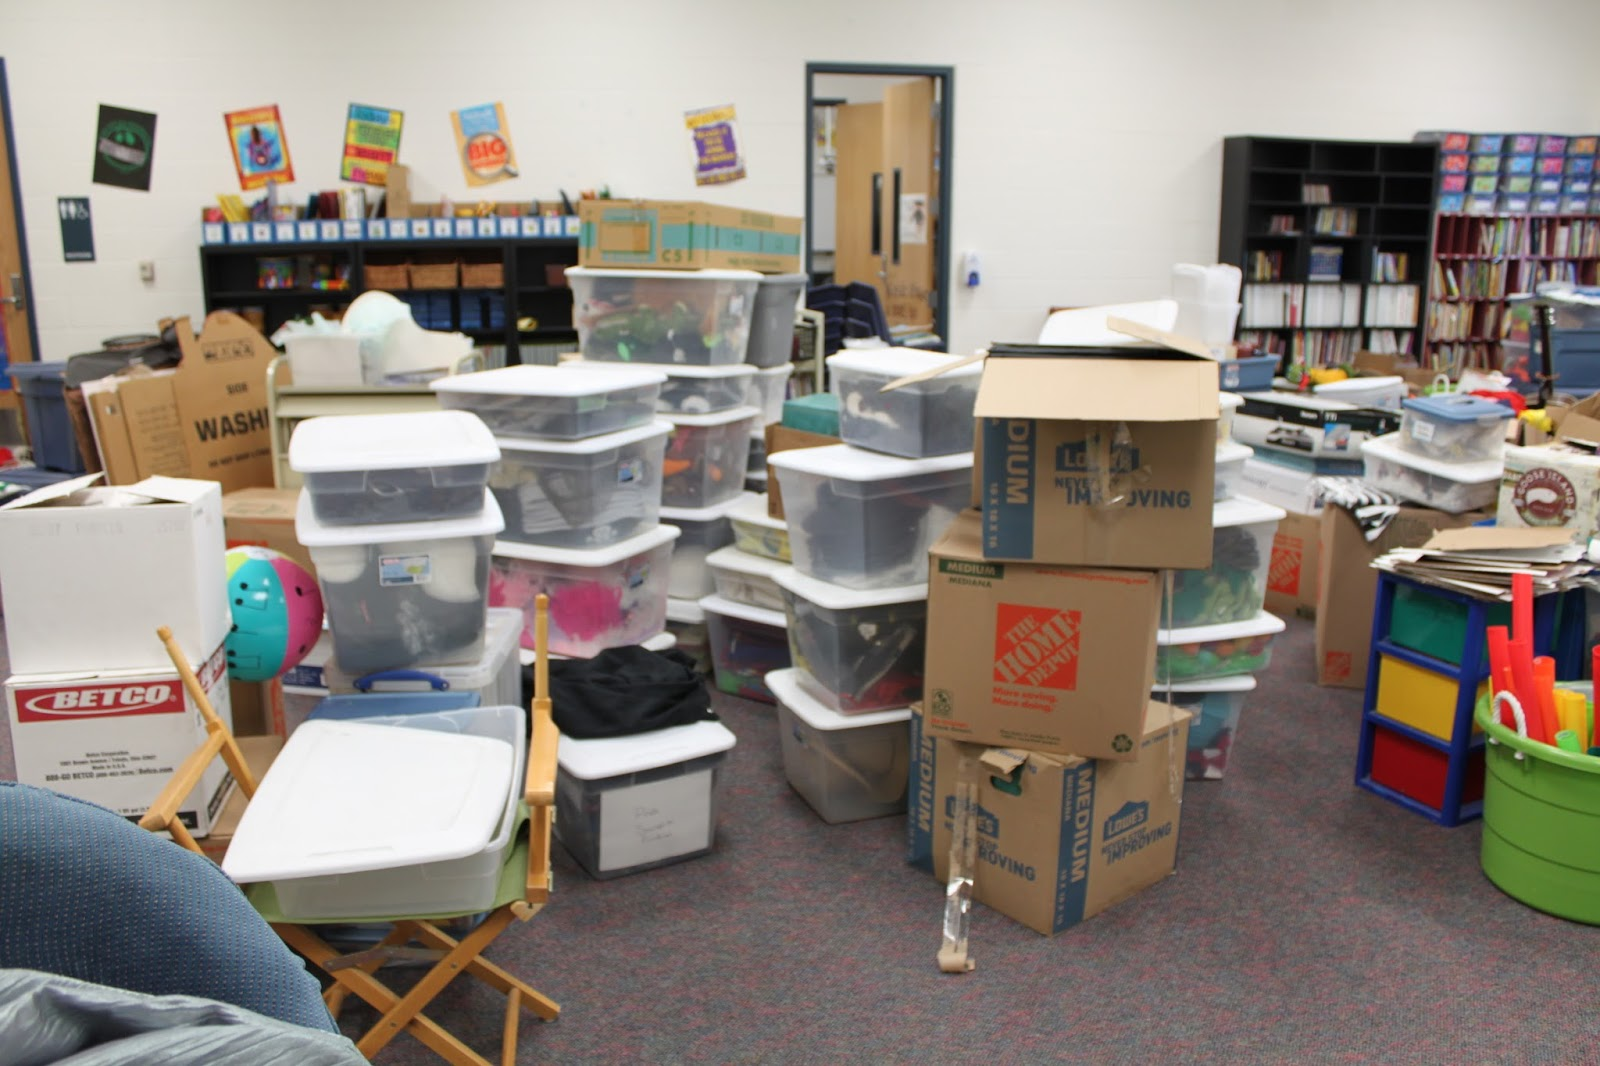 made for music teachers: how to really organize a music room